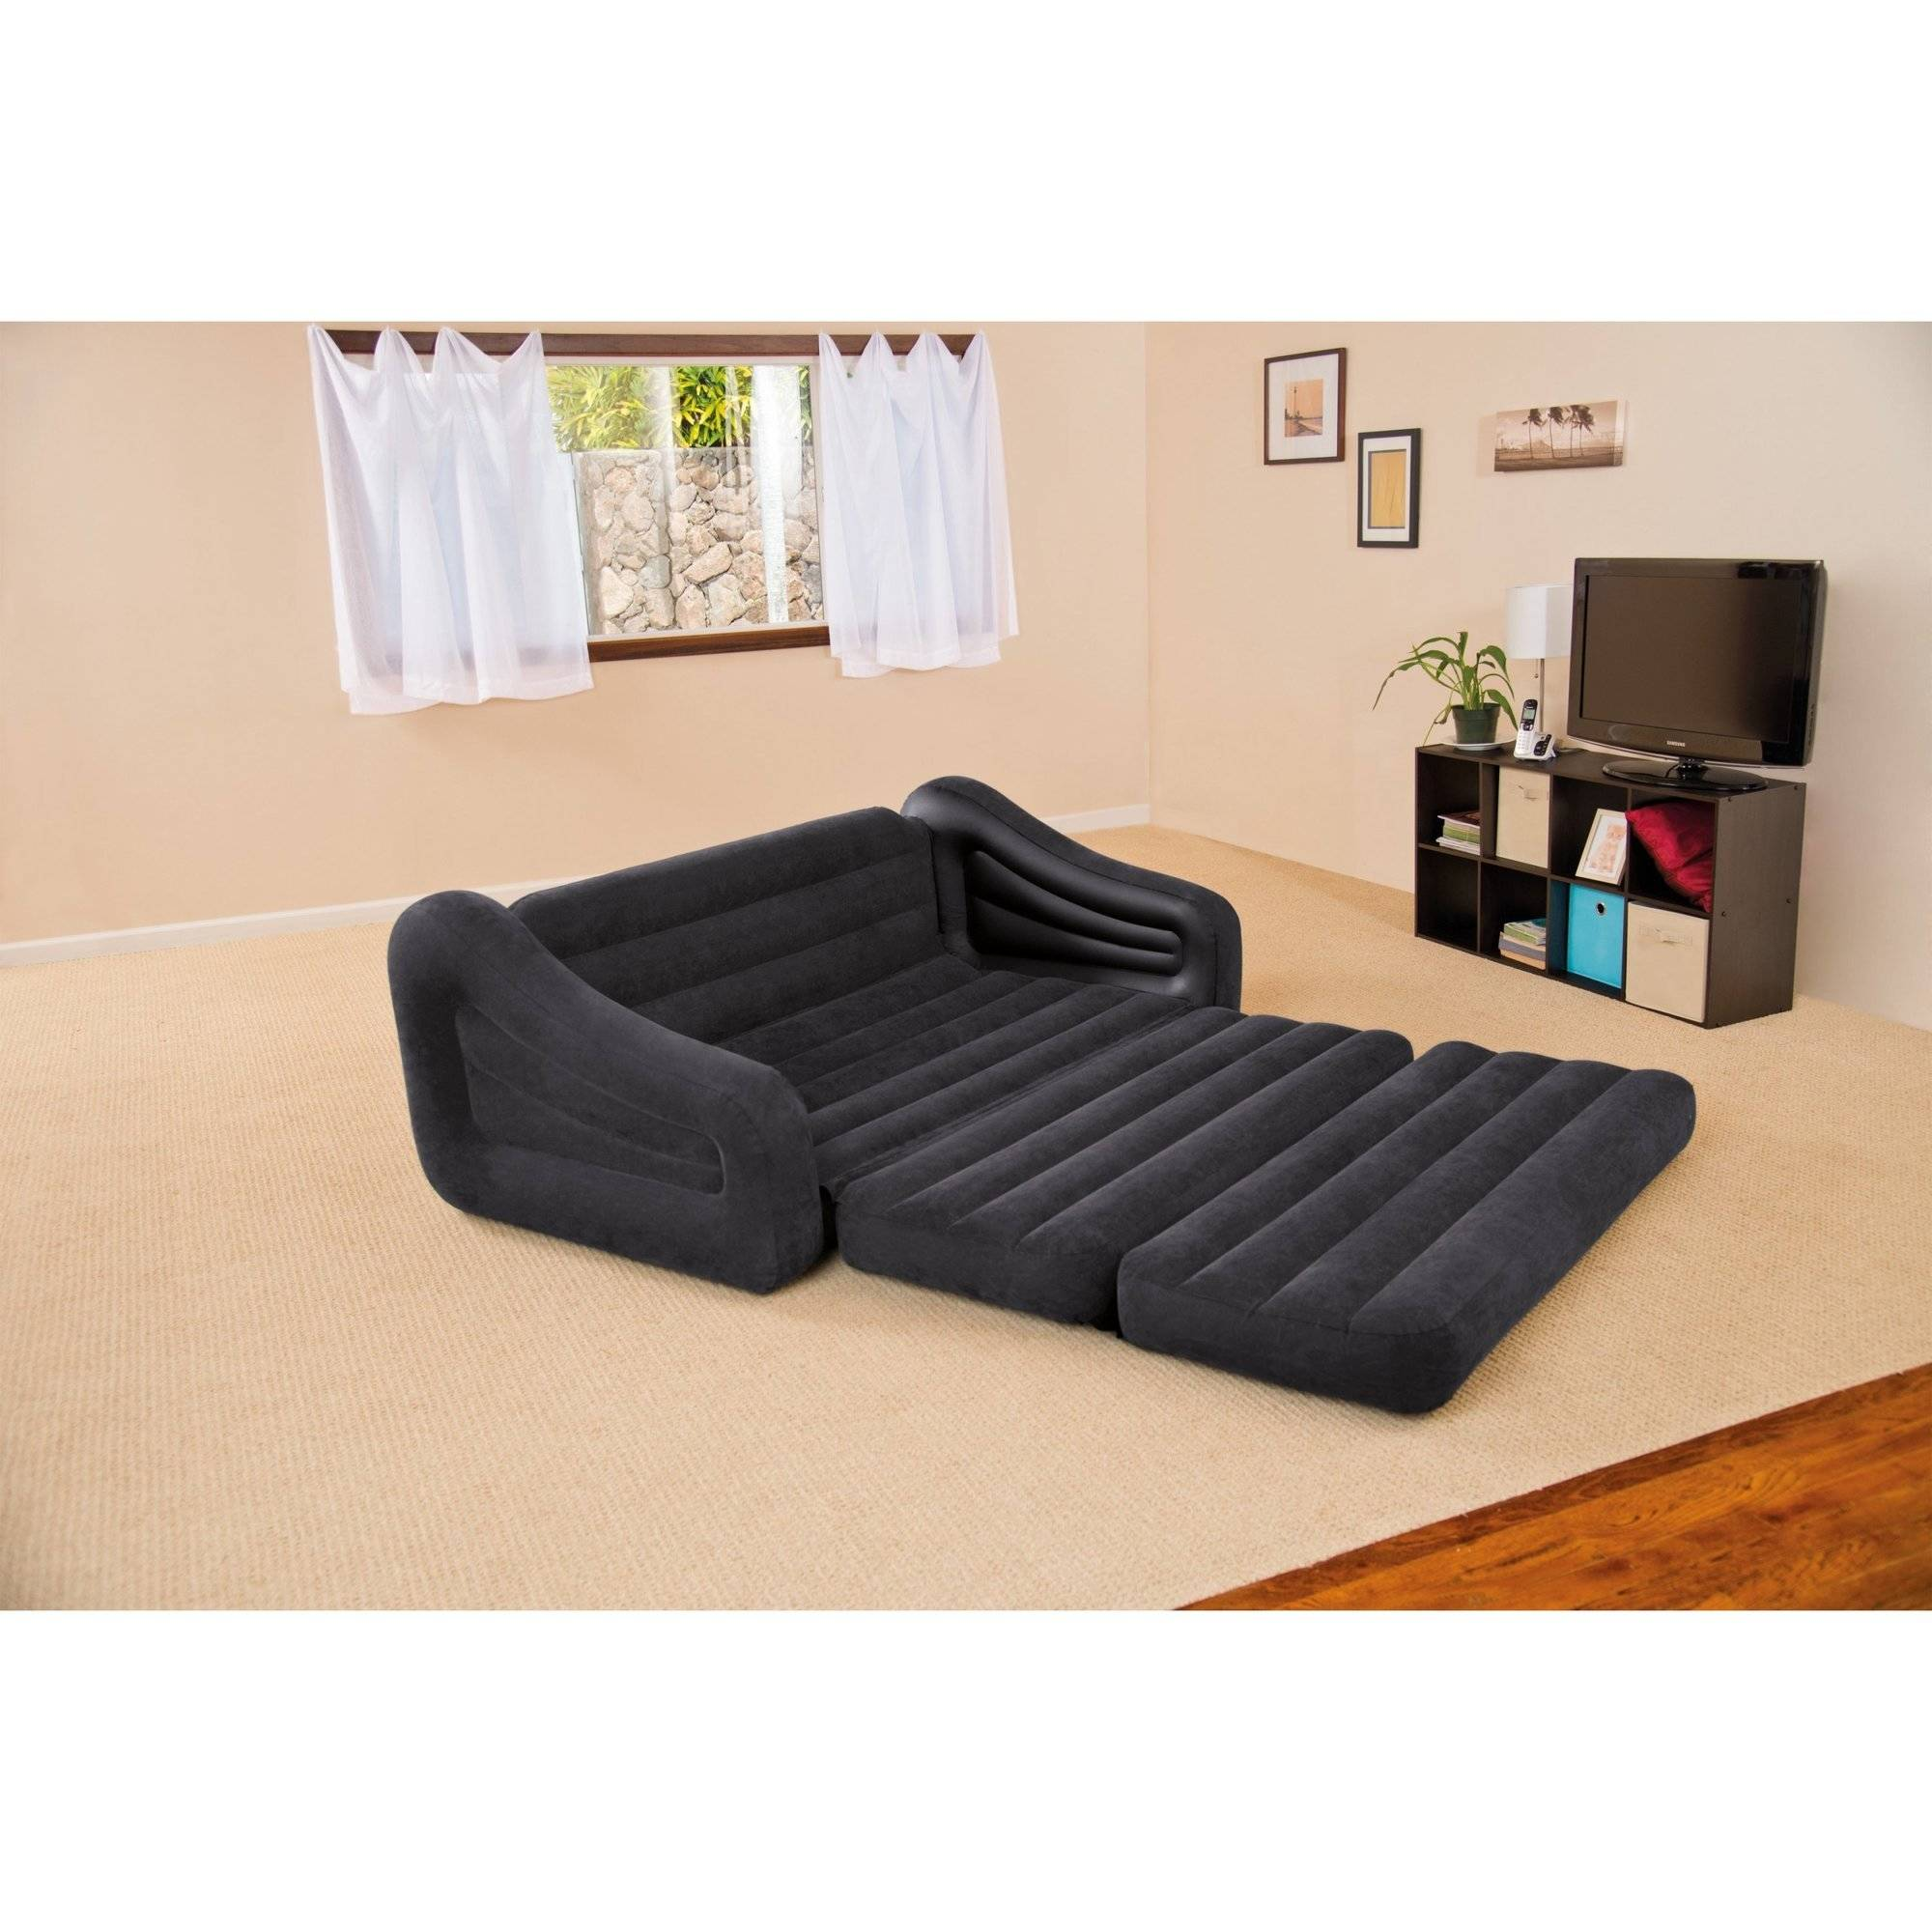 Intex Queen Inflatable Pull Out Sofa Bed   Walmart.com